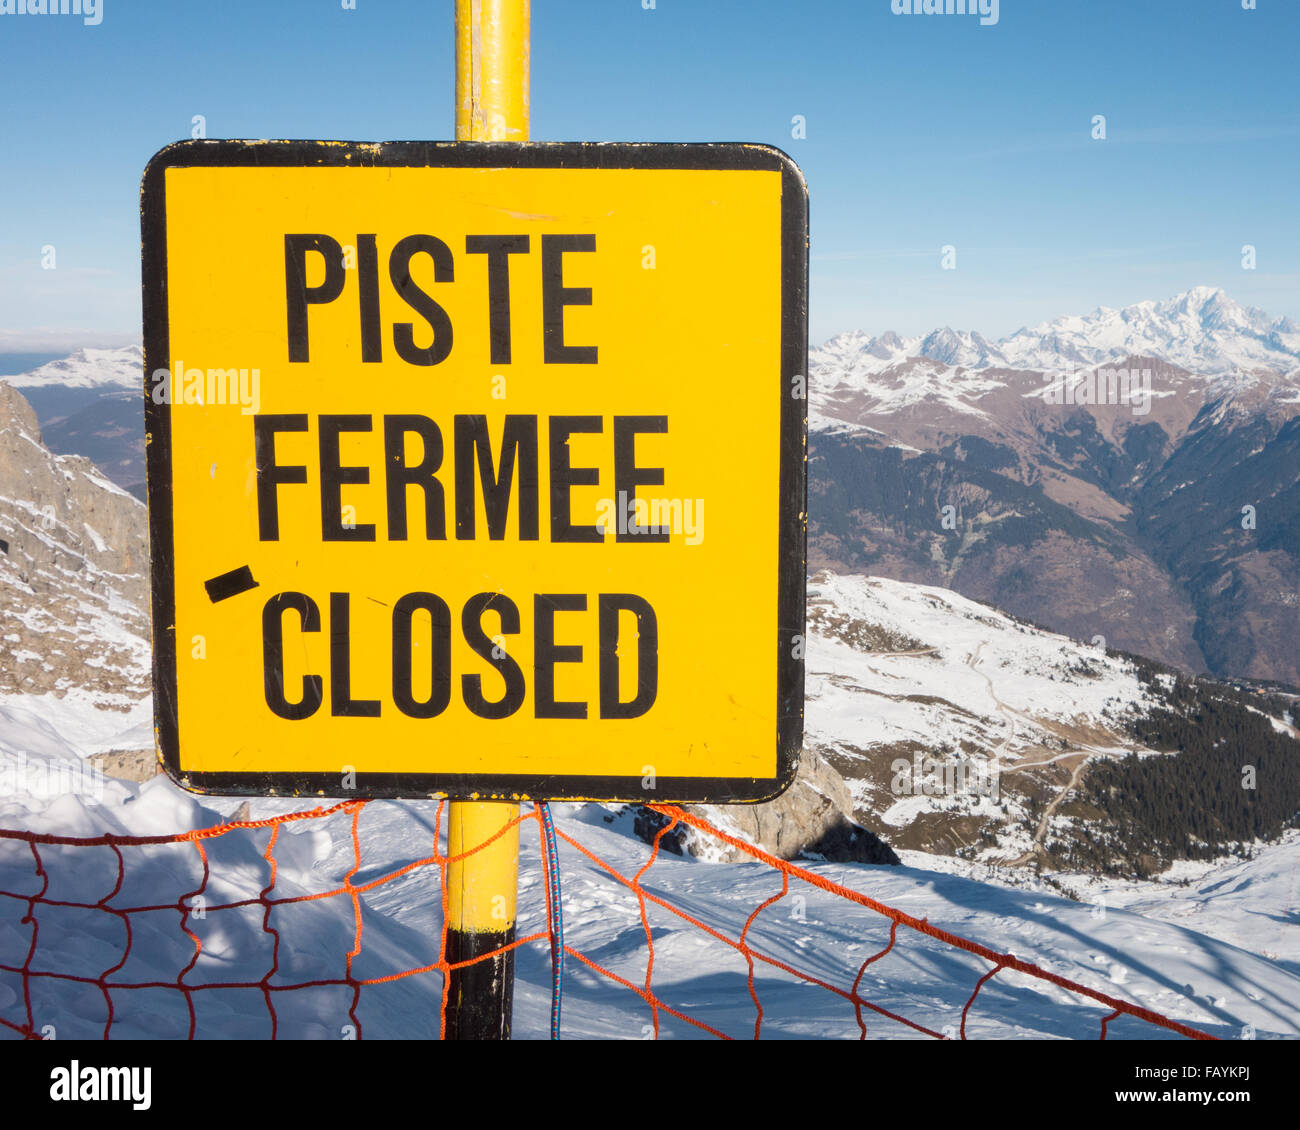 Piste Closed sign in the Three Valleys ski area, above Courchevel 1850, French Alps - Stock Image